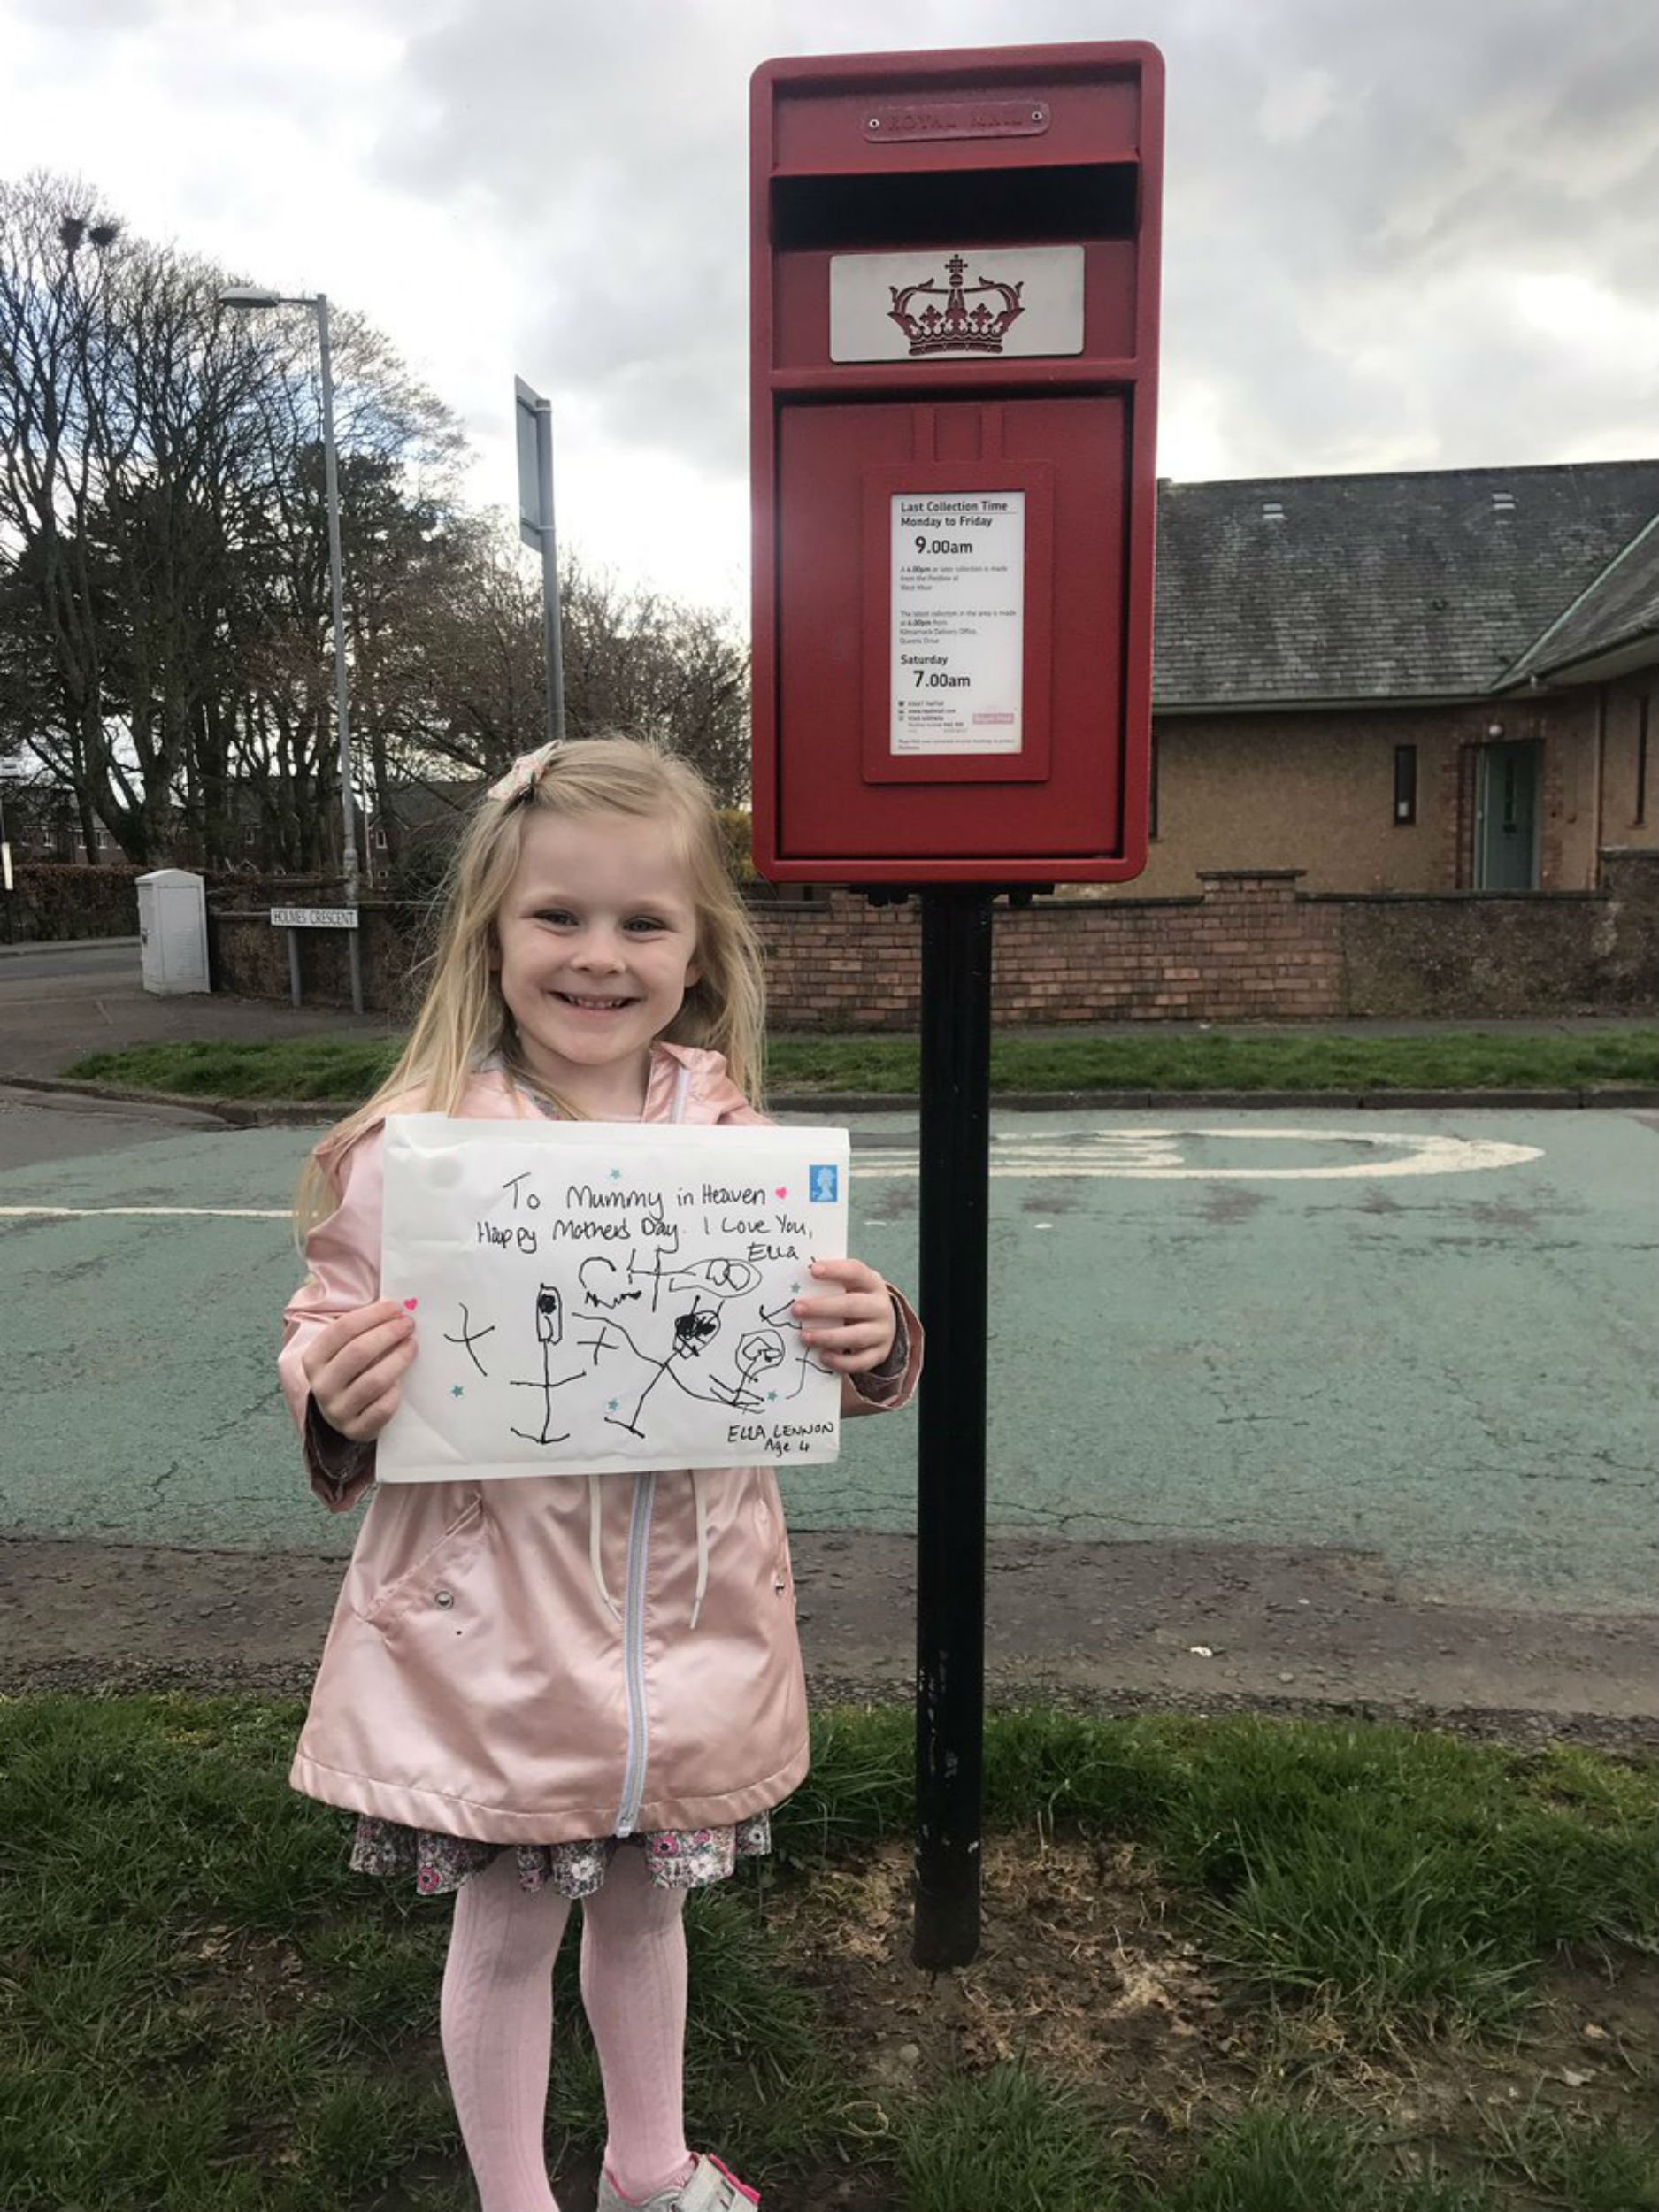 "A LITTLE girl sent her mum a heartbreaking Mother's Day card - four months after she died of cancer. Ella Lennon, four, put the card - addressed to ?mummy in heaven? - in a postbox ahead of her first Mother's Day without her mum. Then, in an incredibly warm-hearted gesture, a member of staff at Royal Mail sent Ella a letter back from her mum, saying how proud she was of her. The touching exchange was revealed by Ella's aunt, Linda Ross, on social media. Linda, from Kilmarnock, East Ayrshire, posted: ?On my sister's 1st heavenly Mother's Day, Ella sent her mummy a card. ""Today a kind stranger from the Royal Mail used their time to reply and make a little girl so happy!"""